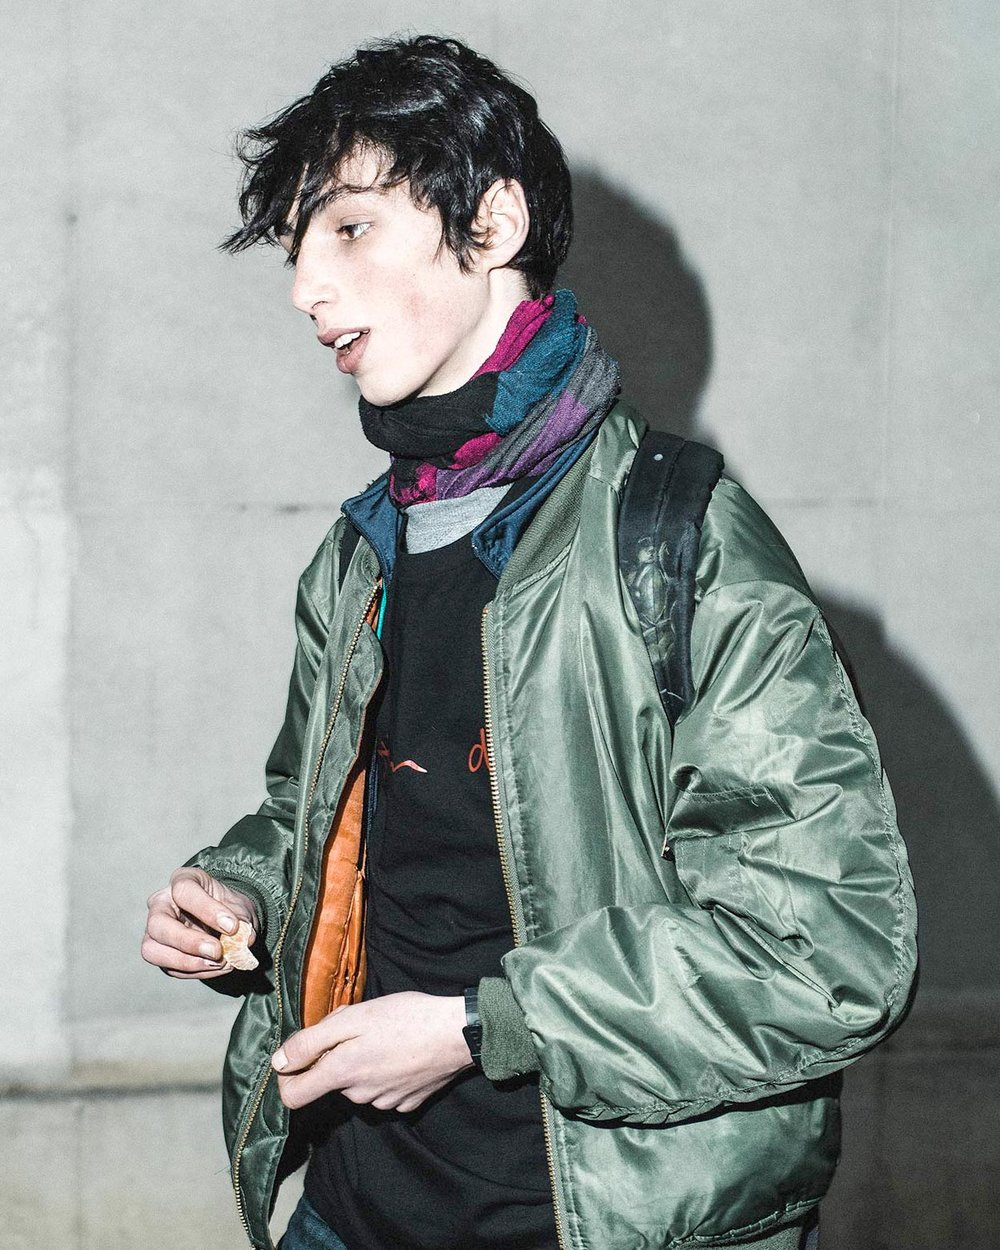 david_picchiottino_FW_FASHION_WEEK_streetstyle_08a.jpg